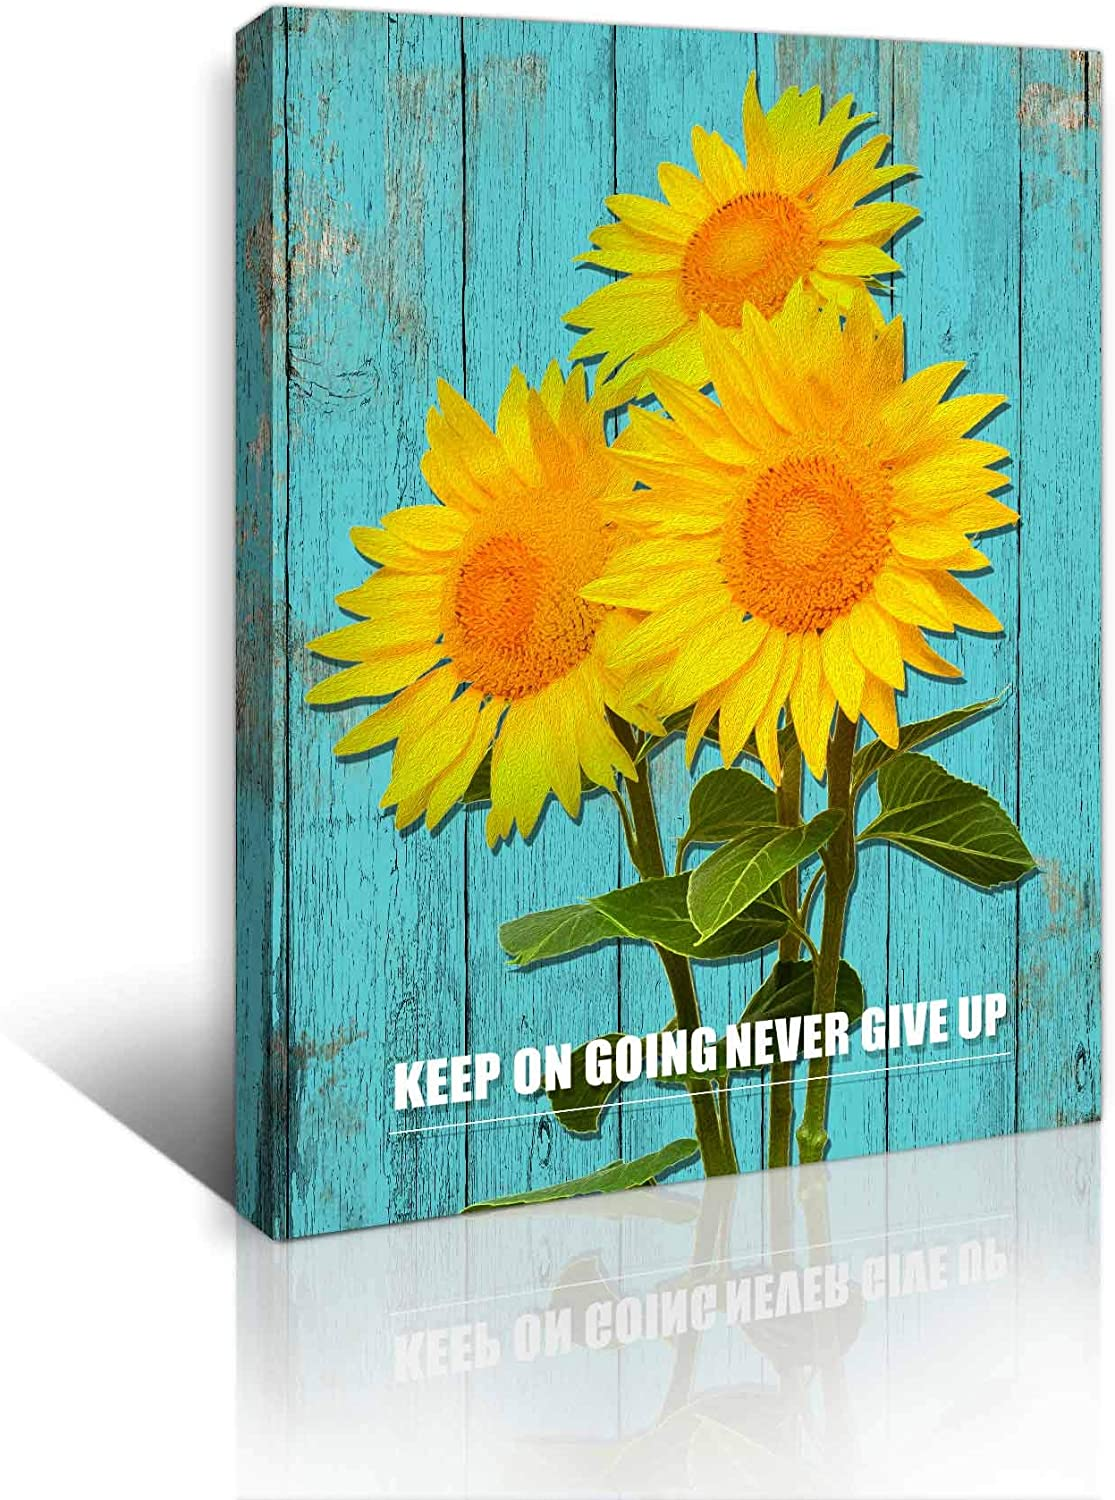 Rustic Sunflower Bathroom Wall Decor Farmhouse Wall Art Framed Picture for Bedroom Wall Decor Kitchen Canvas Prints Teal Country Board Theme Wall Decoration Modern Artwork for Home Decor Size 12x16